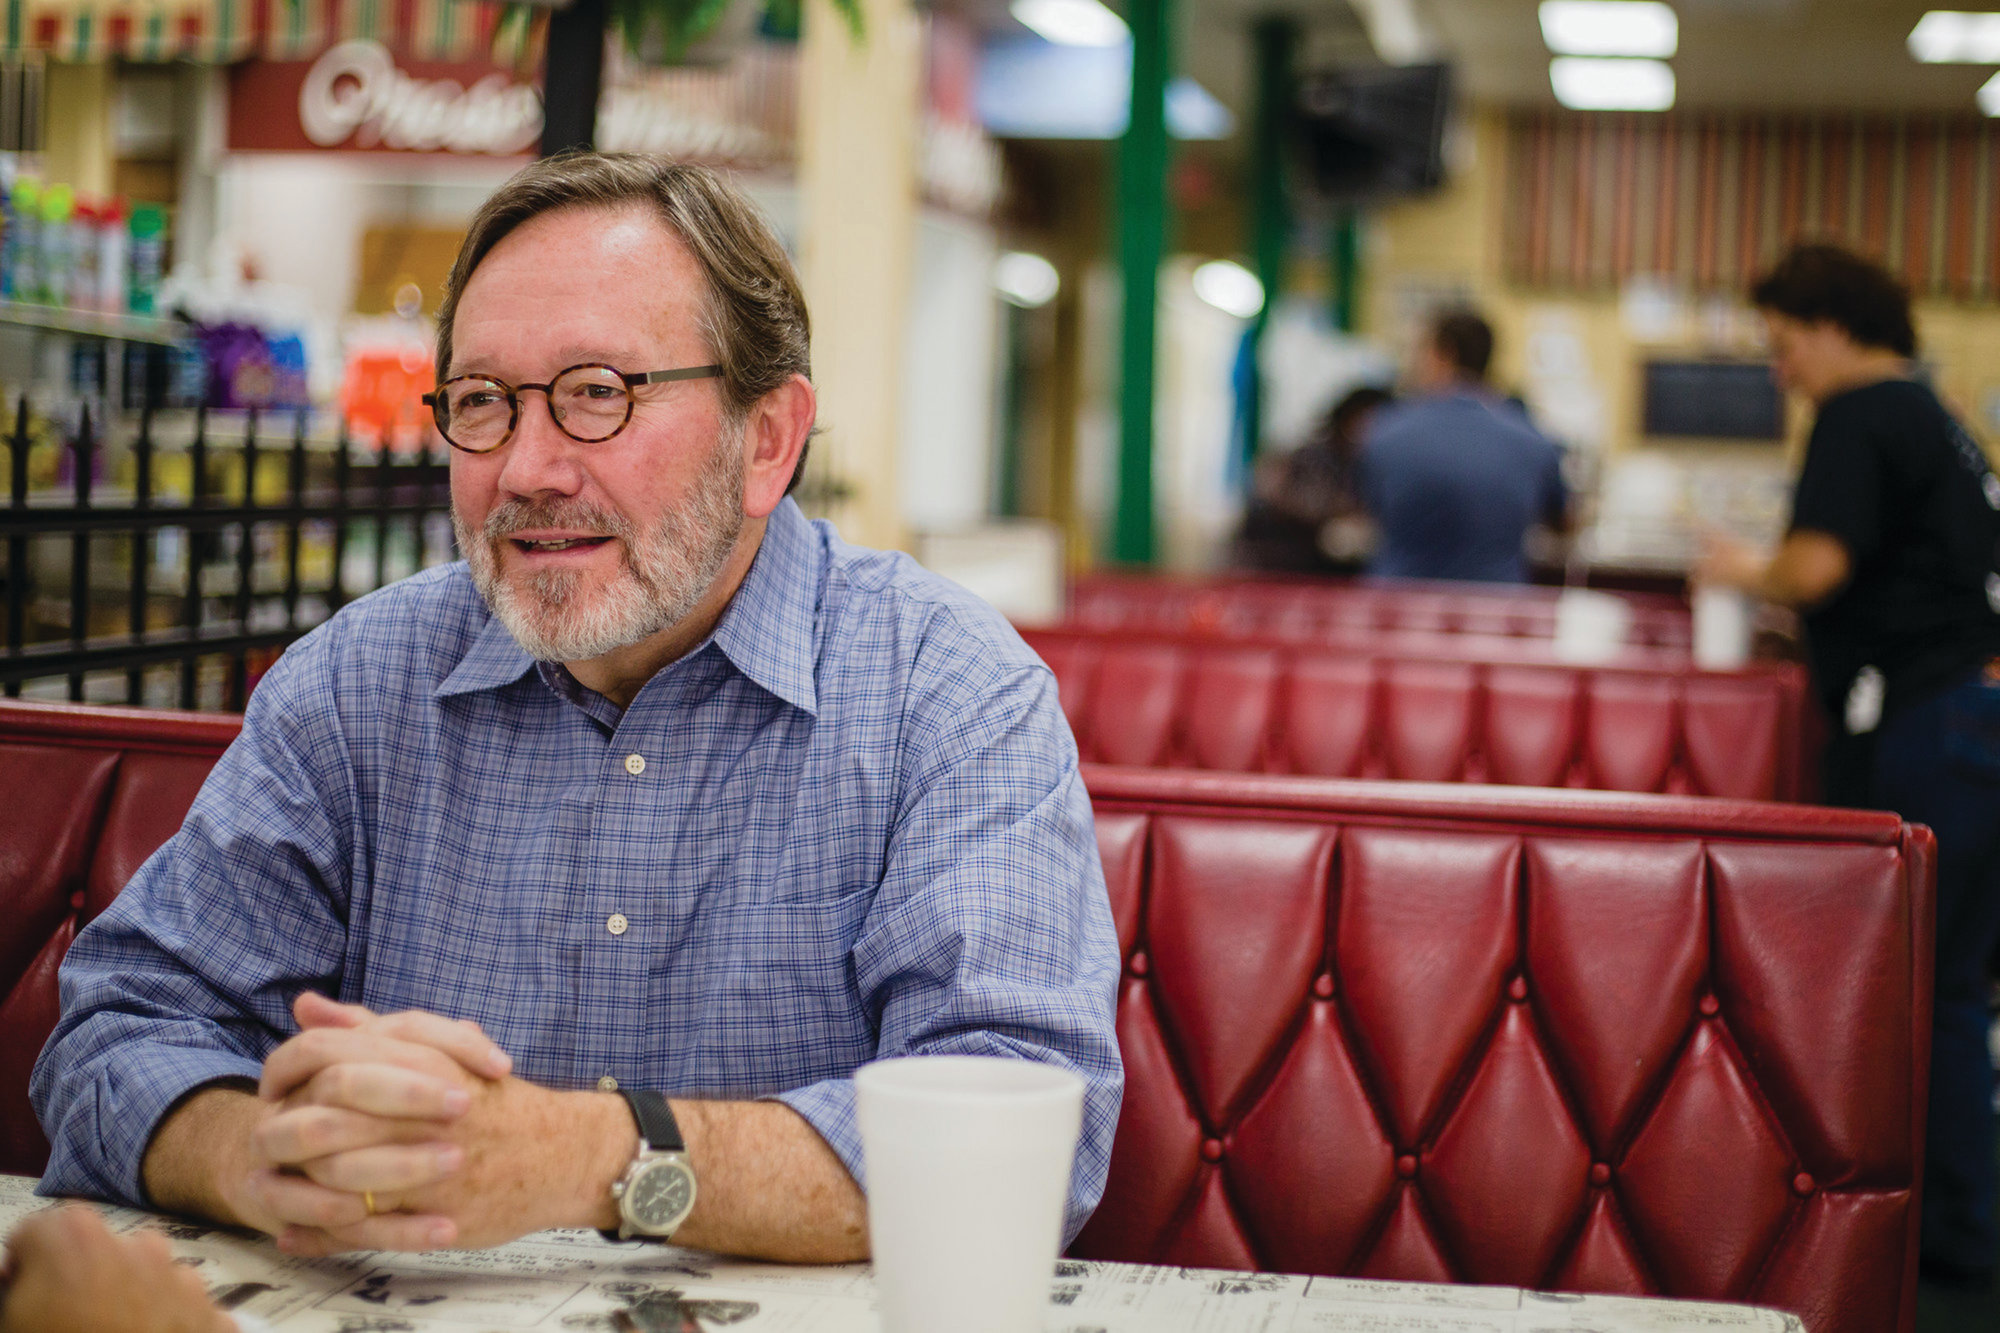 In this file photo, Archie Parnell sits at Sumter Cut Rate Soda Fountain and Drug Store ahead of the 2018 election for South Carolina's 5th congressional district, a seat that was retained by U.S. Rep. Ralph Norman.